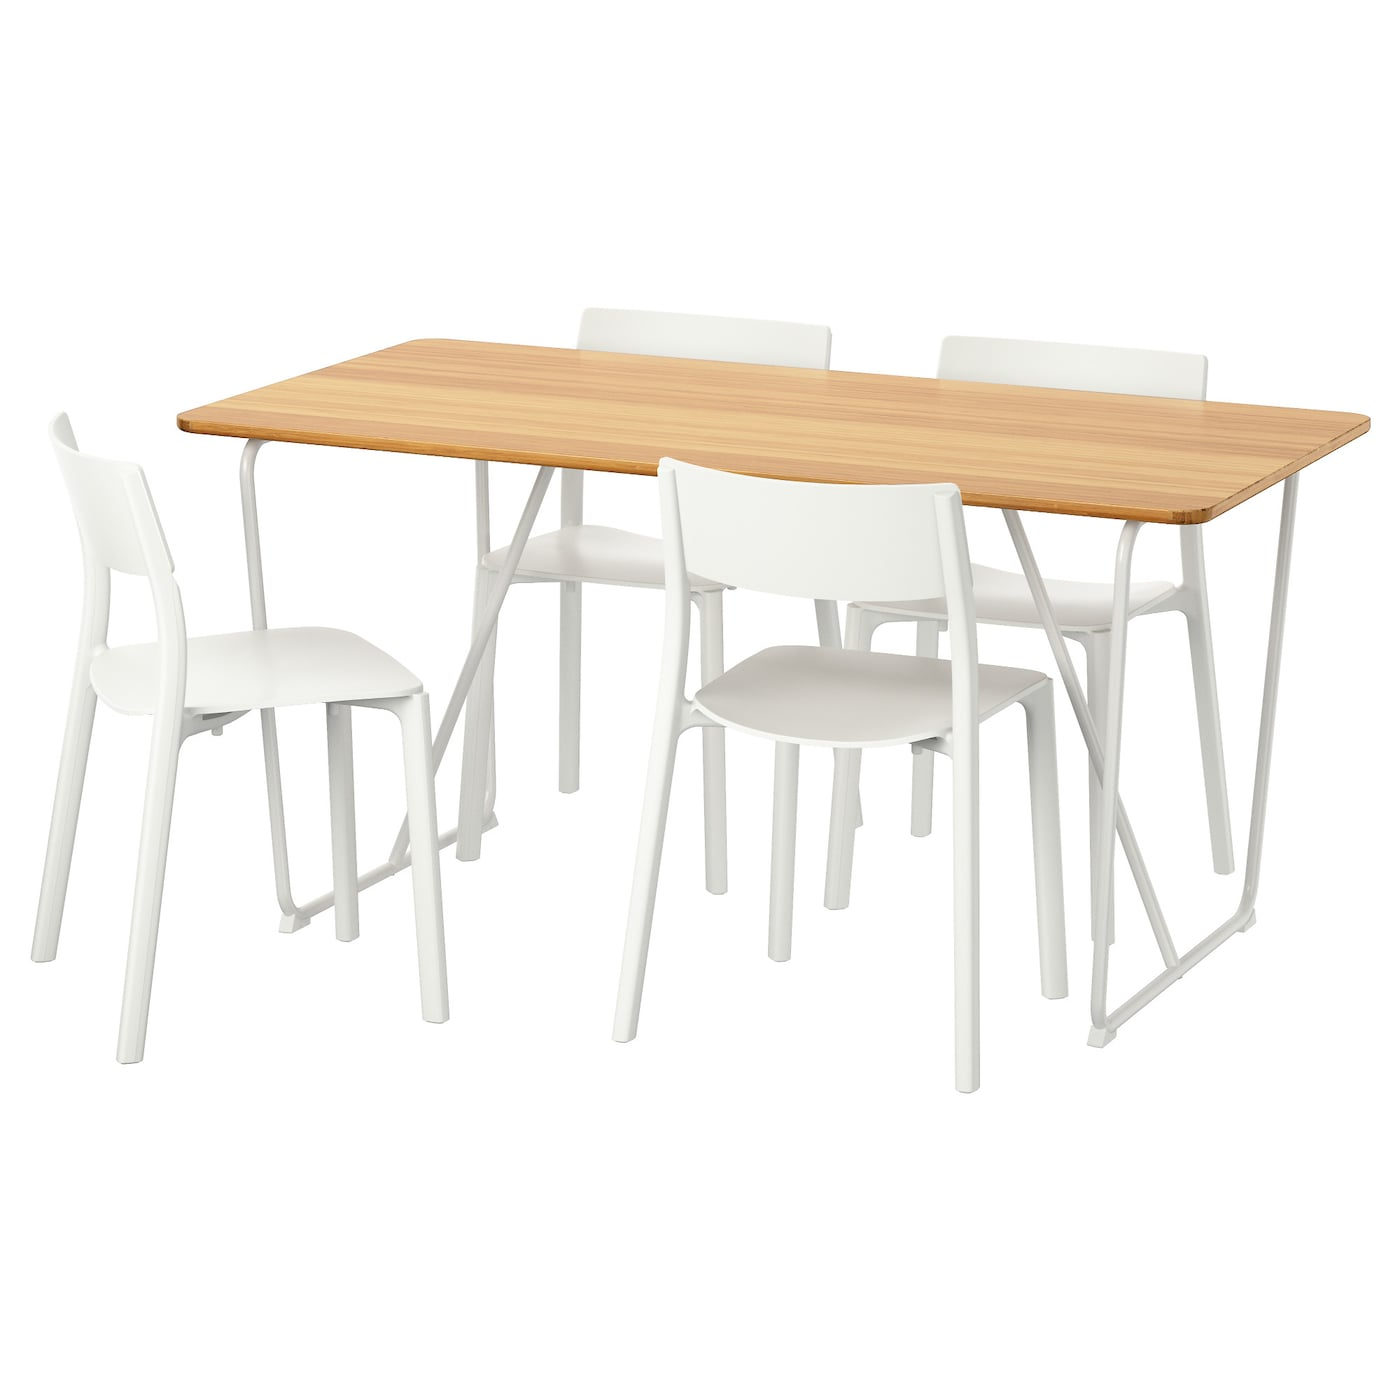 Vraryd janinge table and 4 chairs white bamboo white 150 for Ikea bamboo dining table